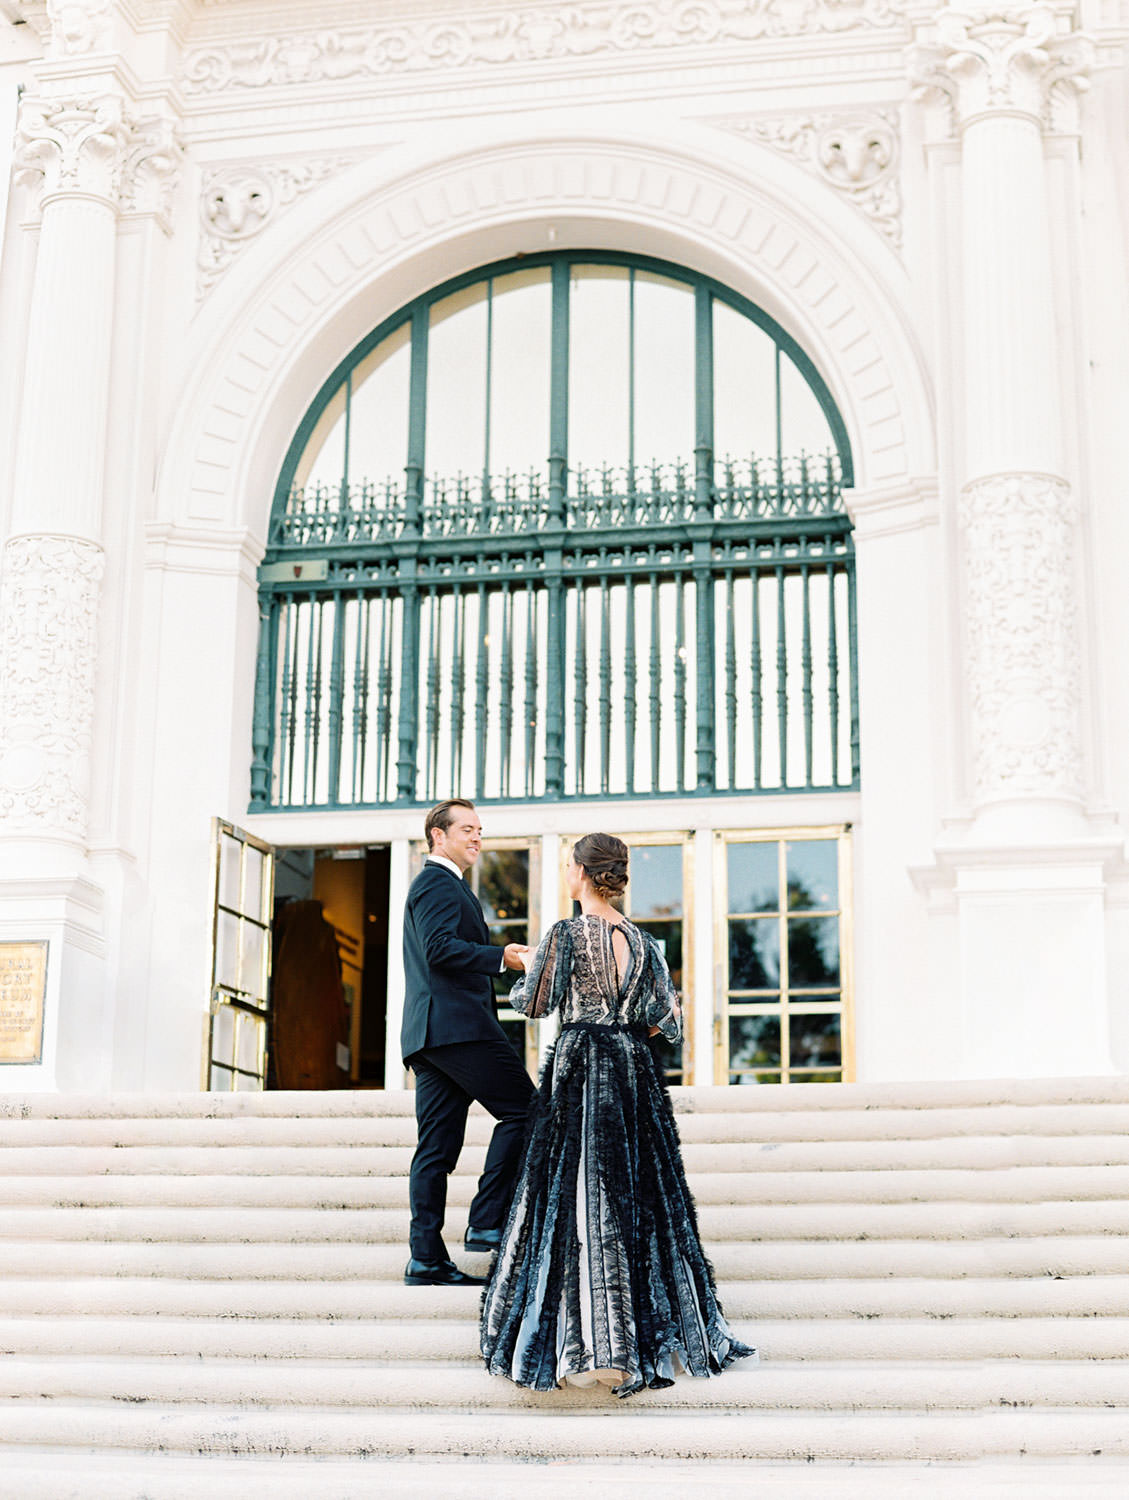 Bride in a black long sleeve lace Marchesa couture gown and groom in a black suit and tie to match his wife. Walking up the stairs of a beautiful building. San Diego Anniversary Photos in Balboa Park on film by Cavin Elizabeth Photography